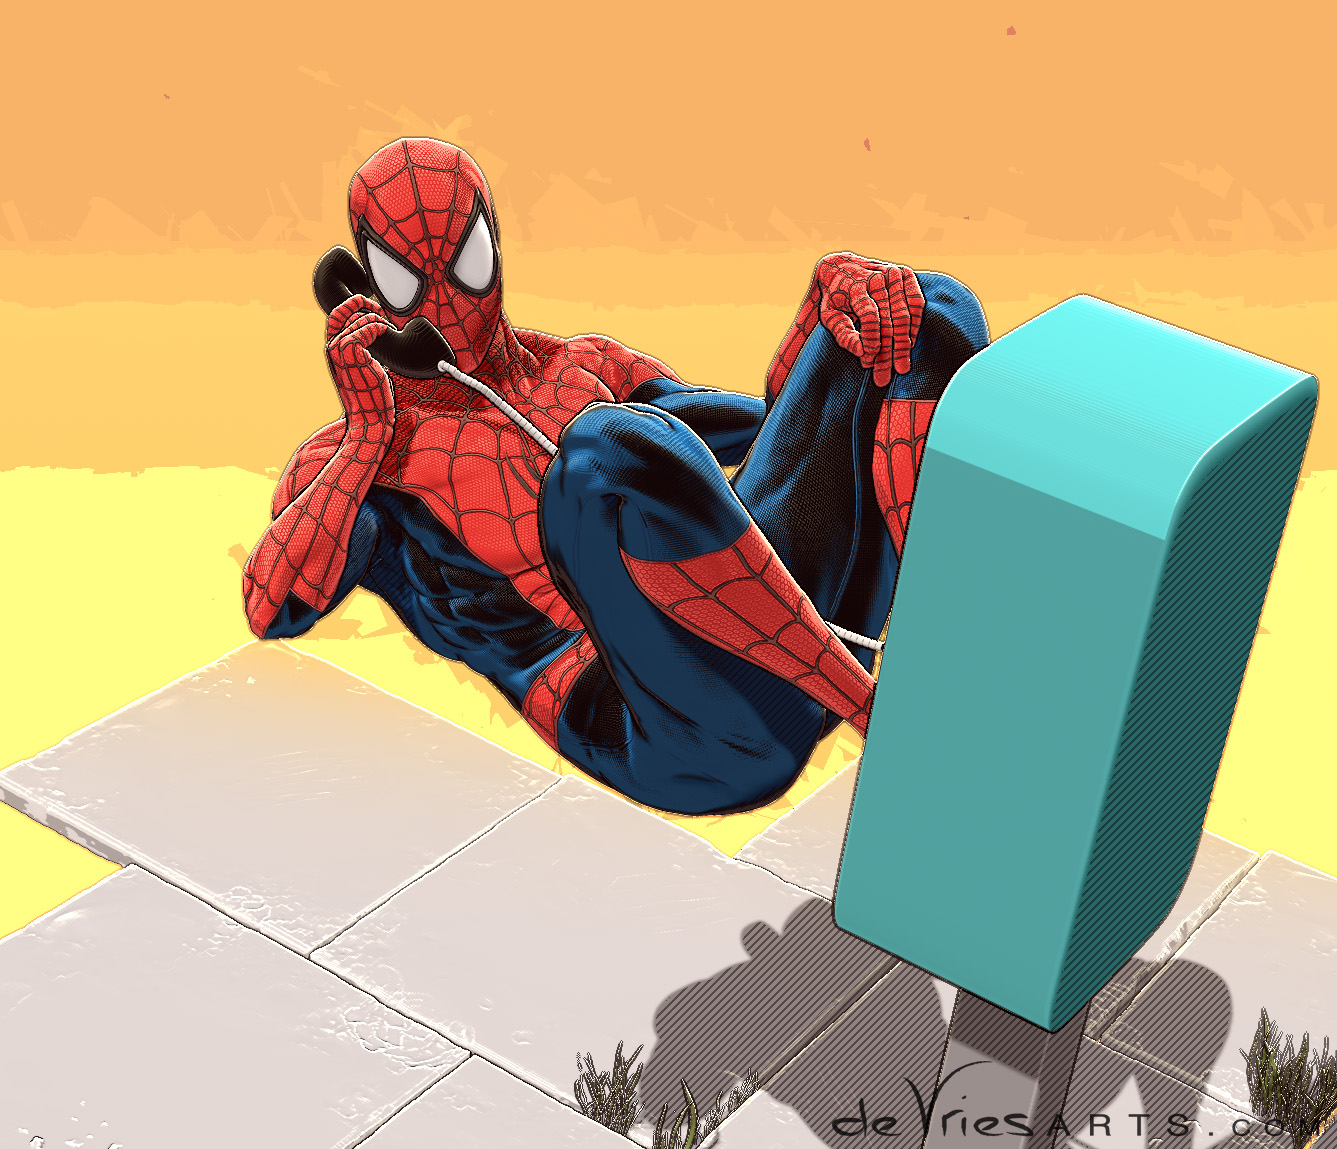 spideyPhone_spiderman_ThijsDeVries_deVriesArts.jpg